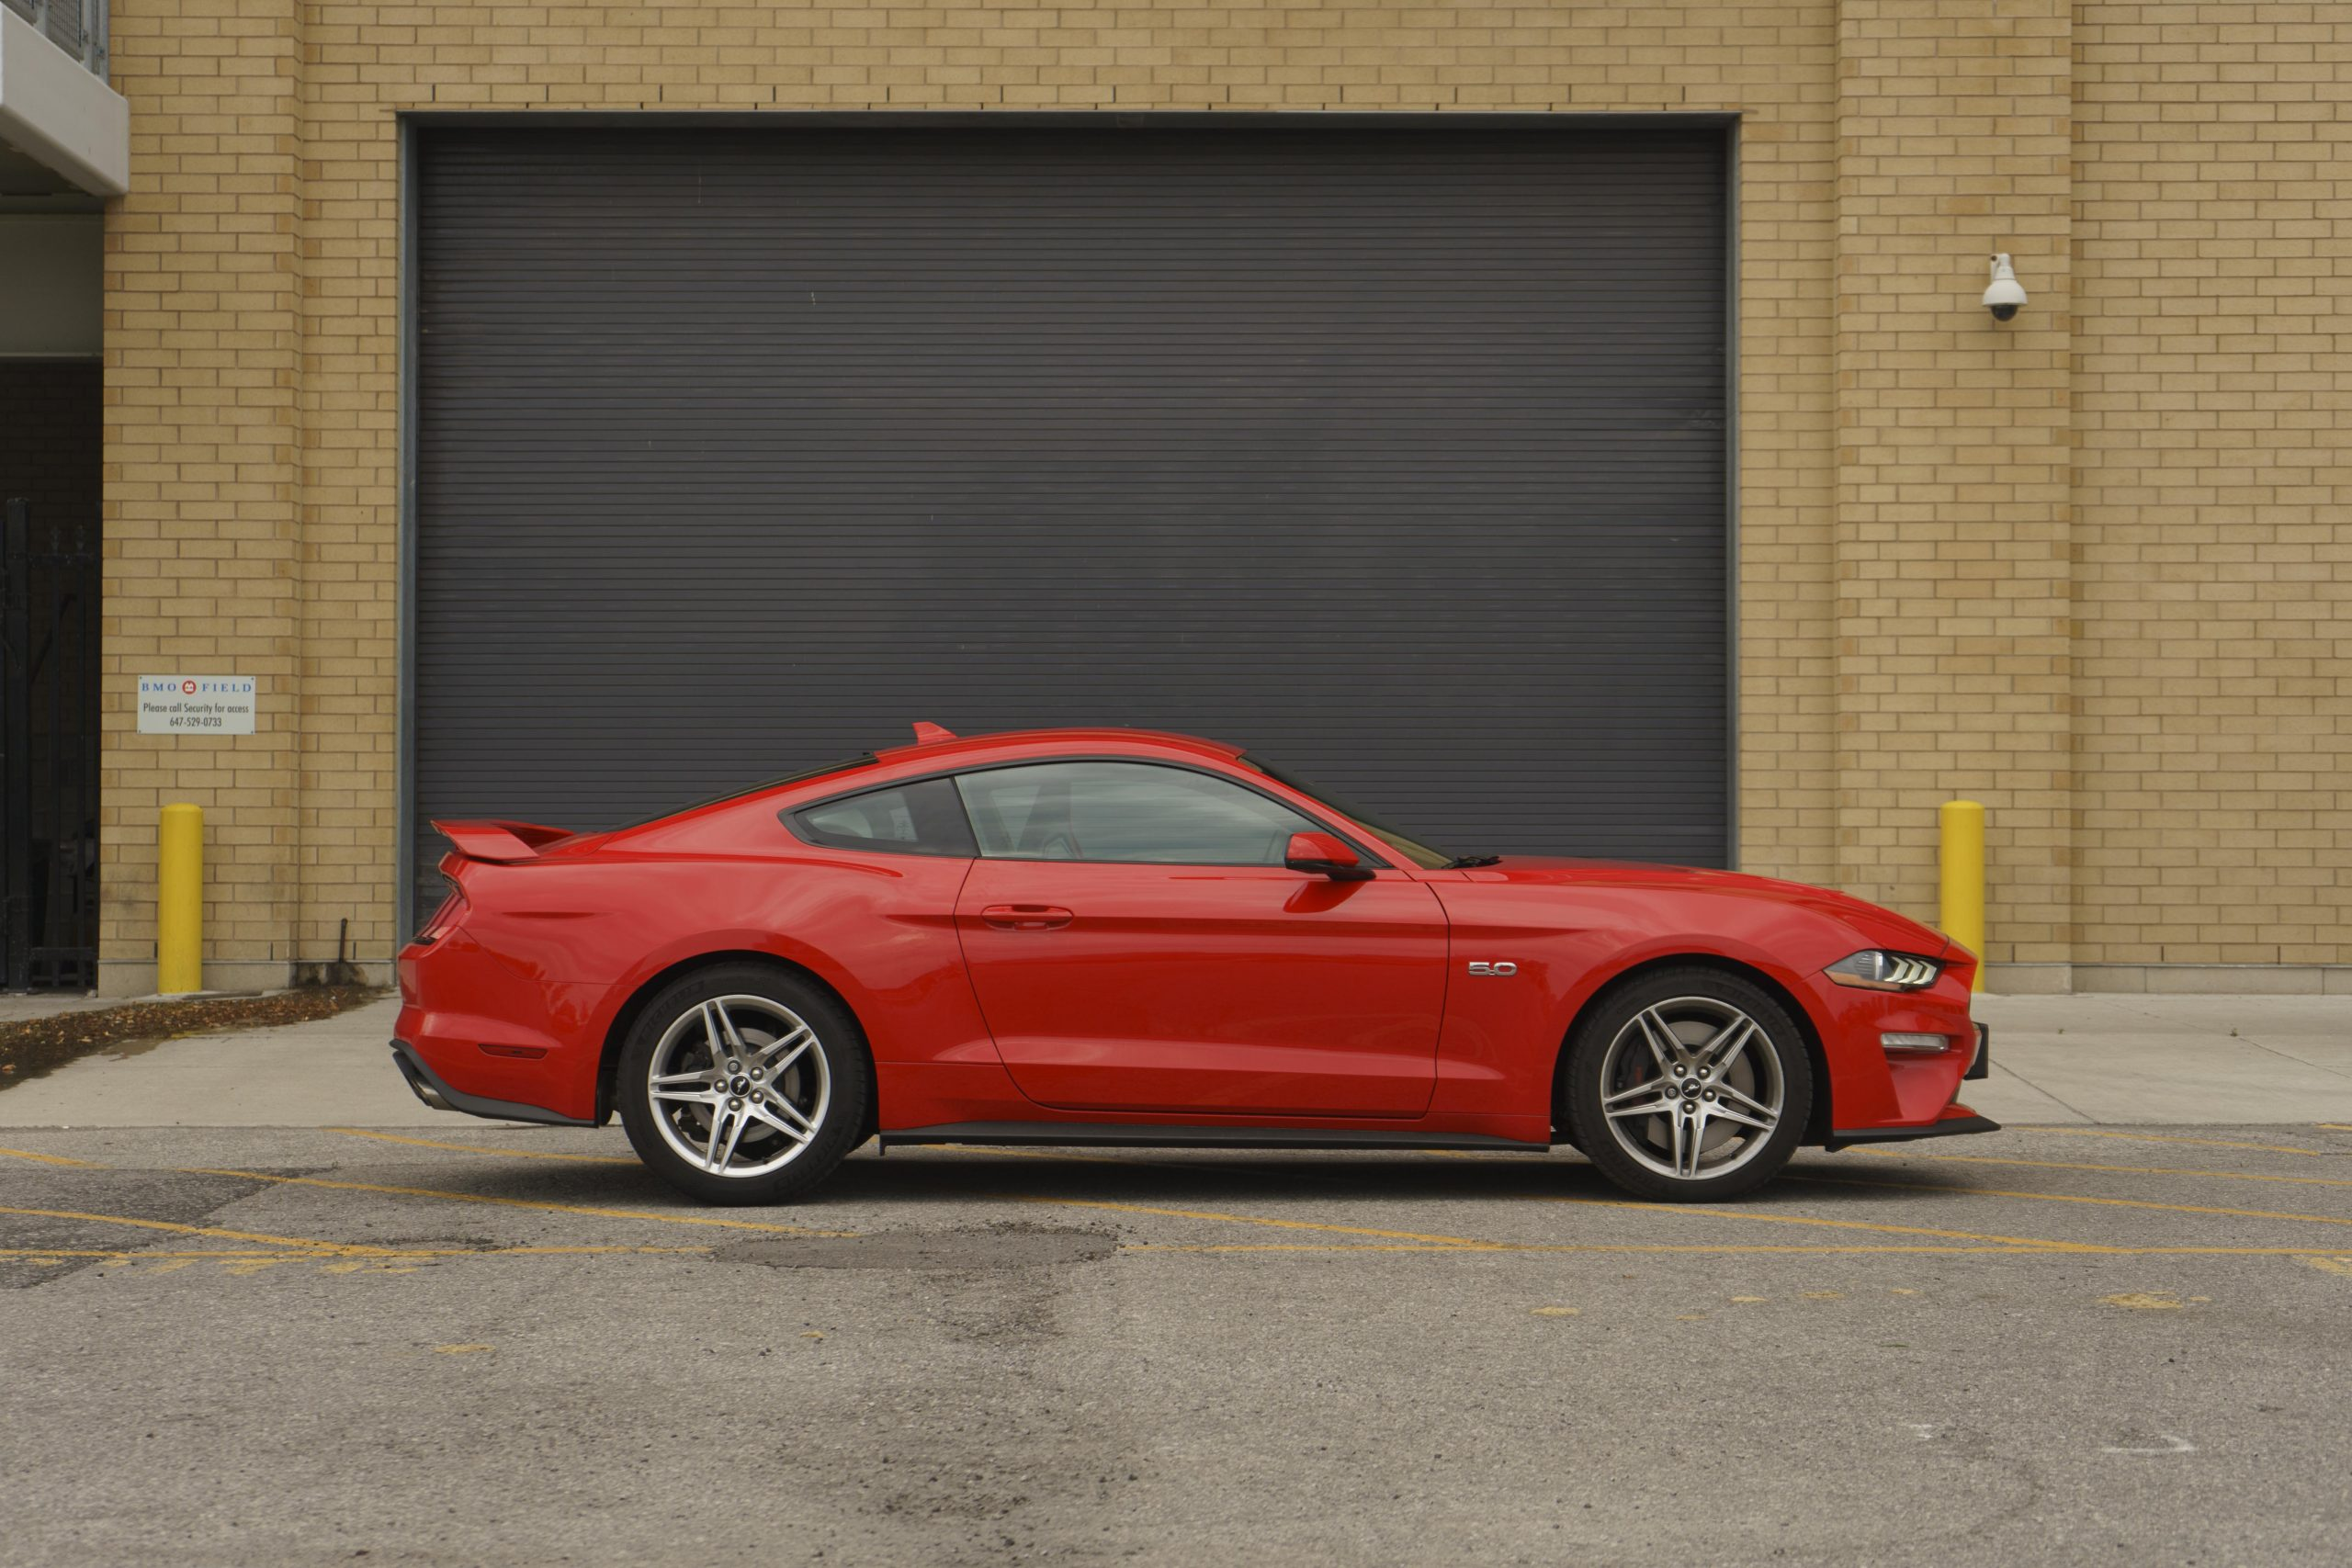 This is a used 2020 ford mustang gt premium fastback offered in north byron georgia by jeff smith ford (used) located at 230 ga highway 49, north byron, geor. Review 2020 Ford Mustang Gt Wheels Ca